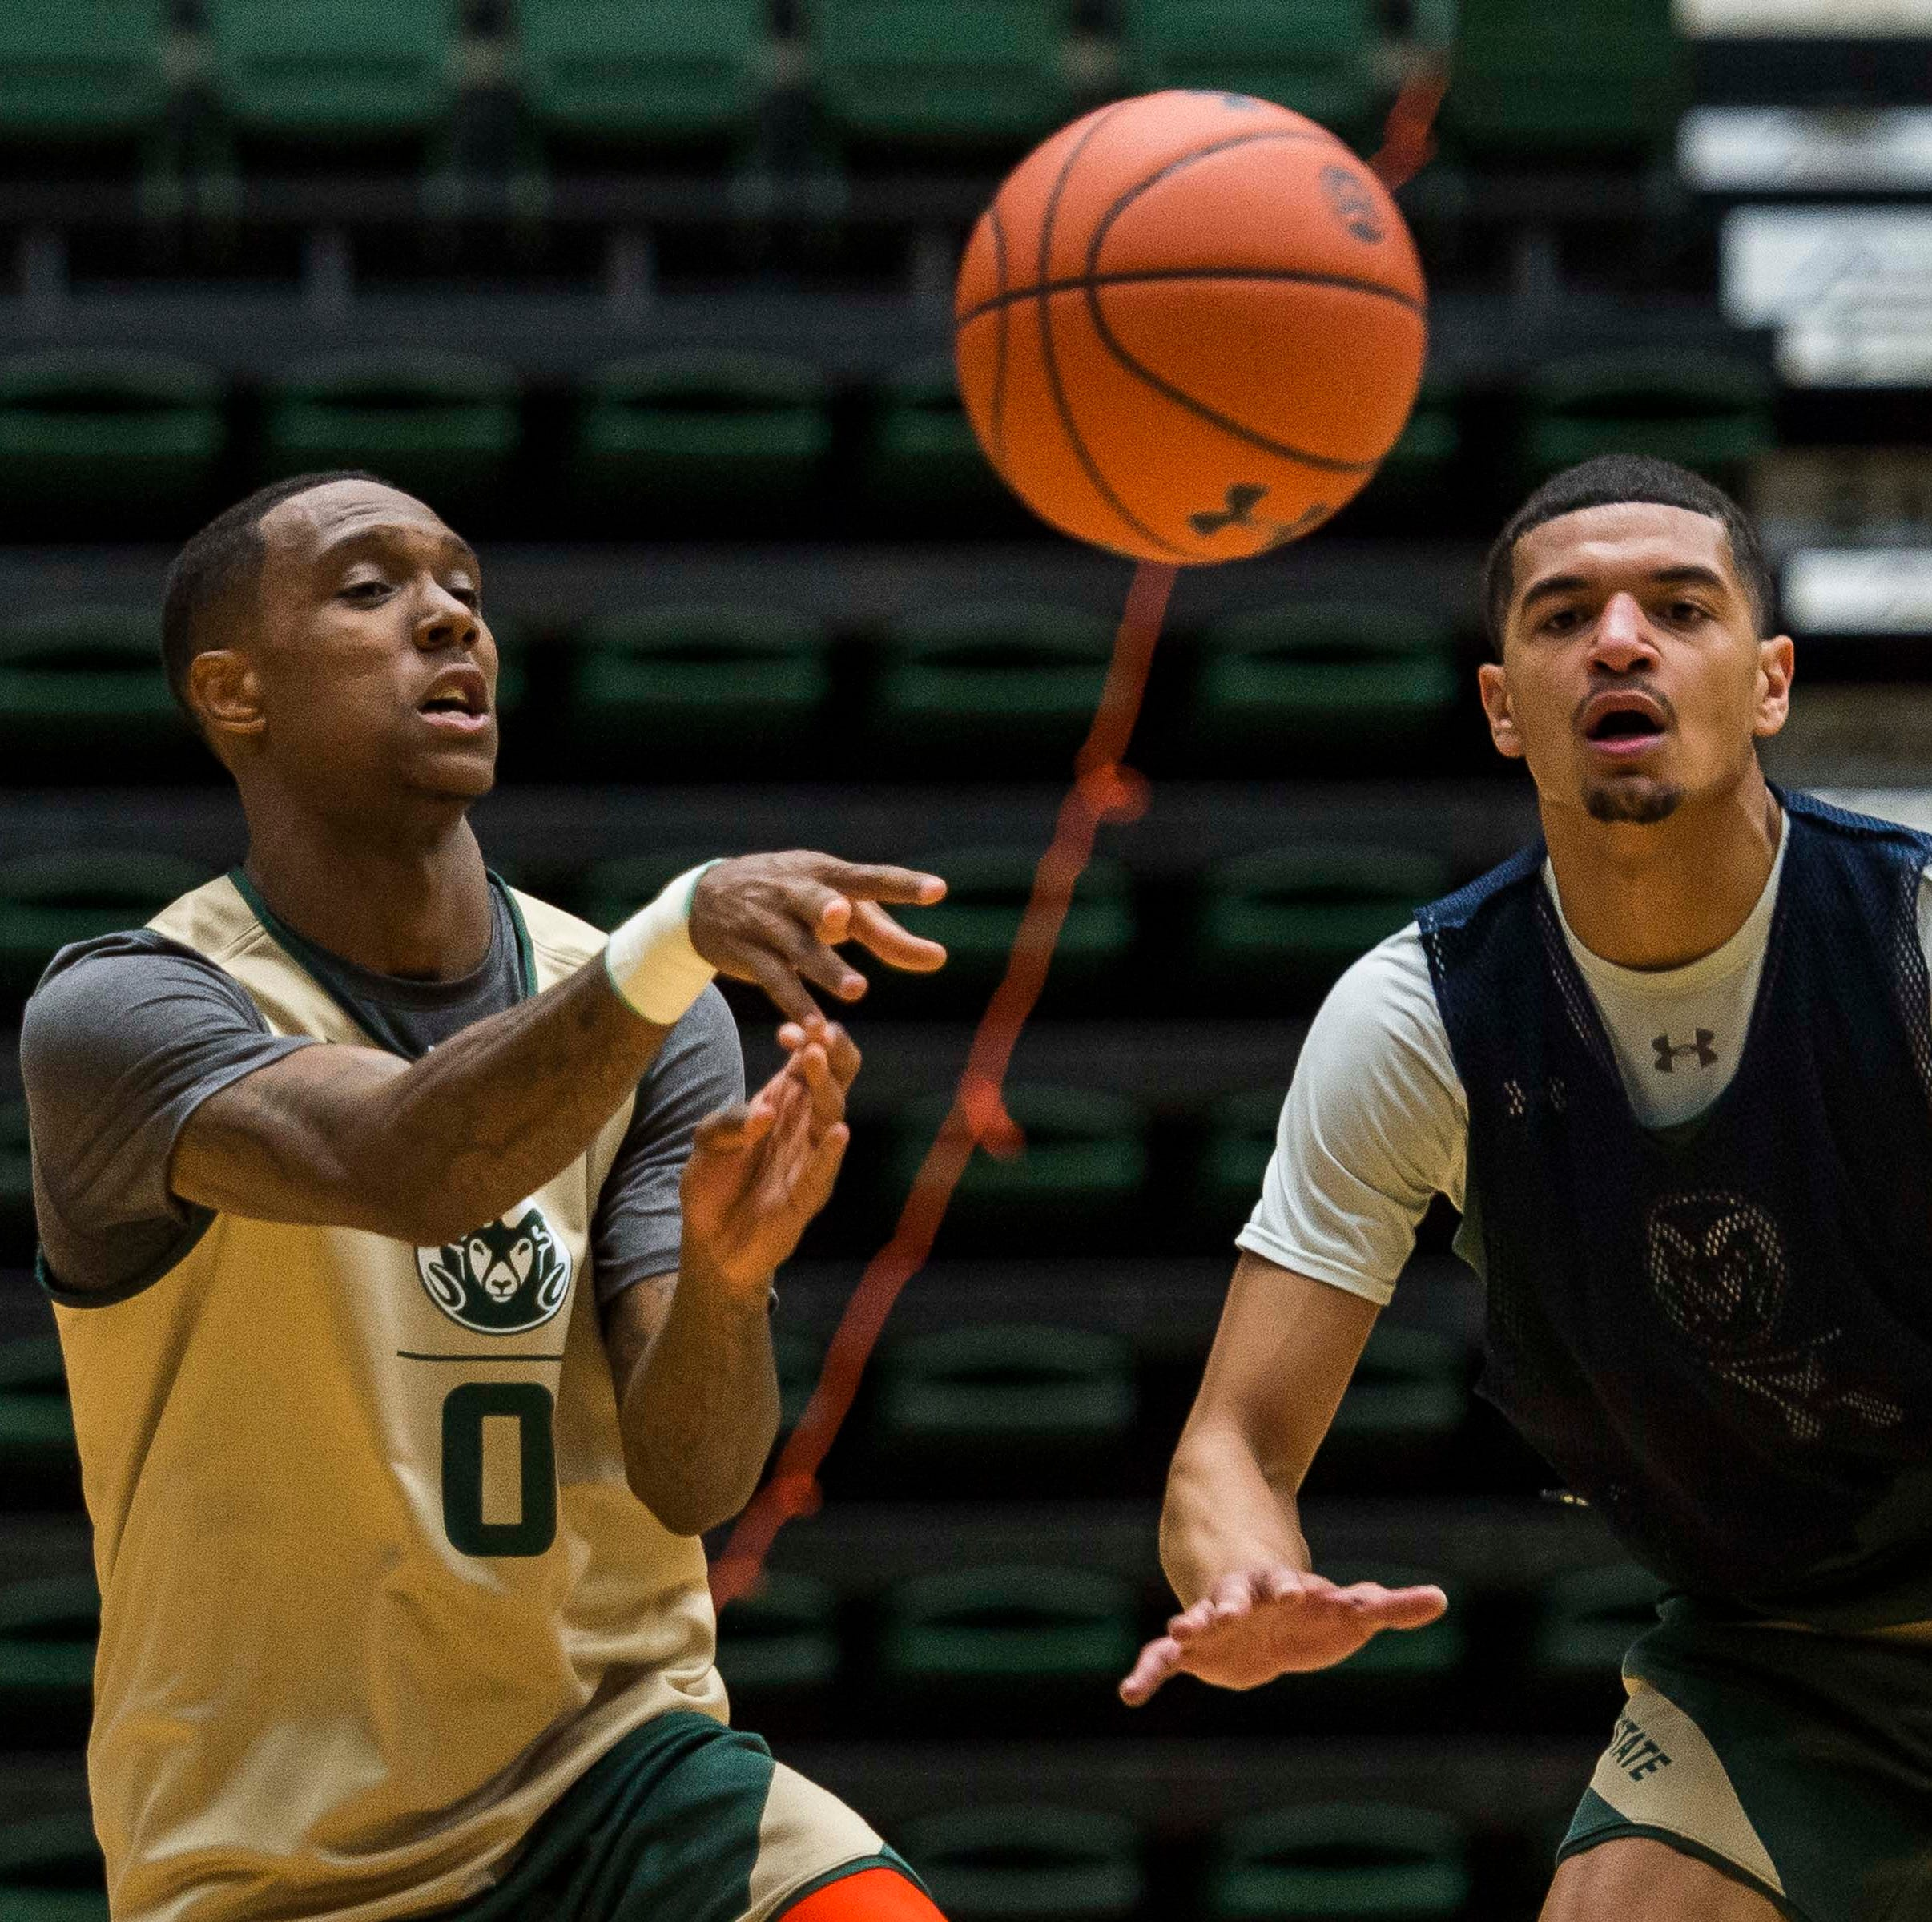 Texas Tech transfer Hyron Edwards expected to make debut with CSU basketball team on Sunday